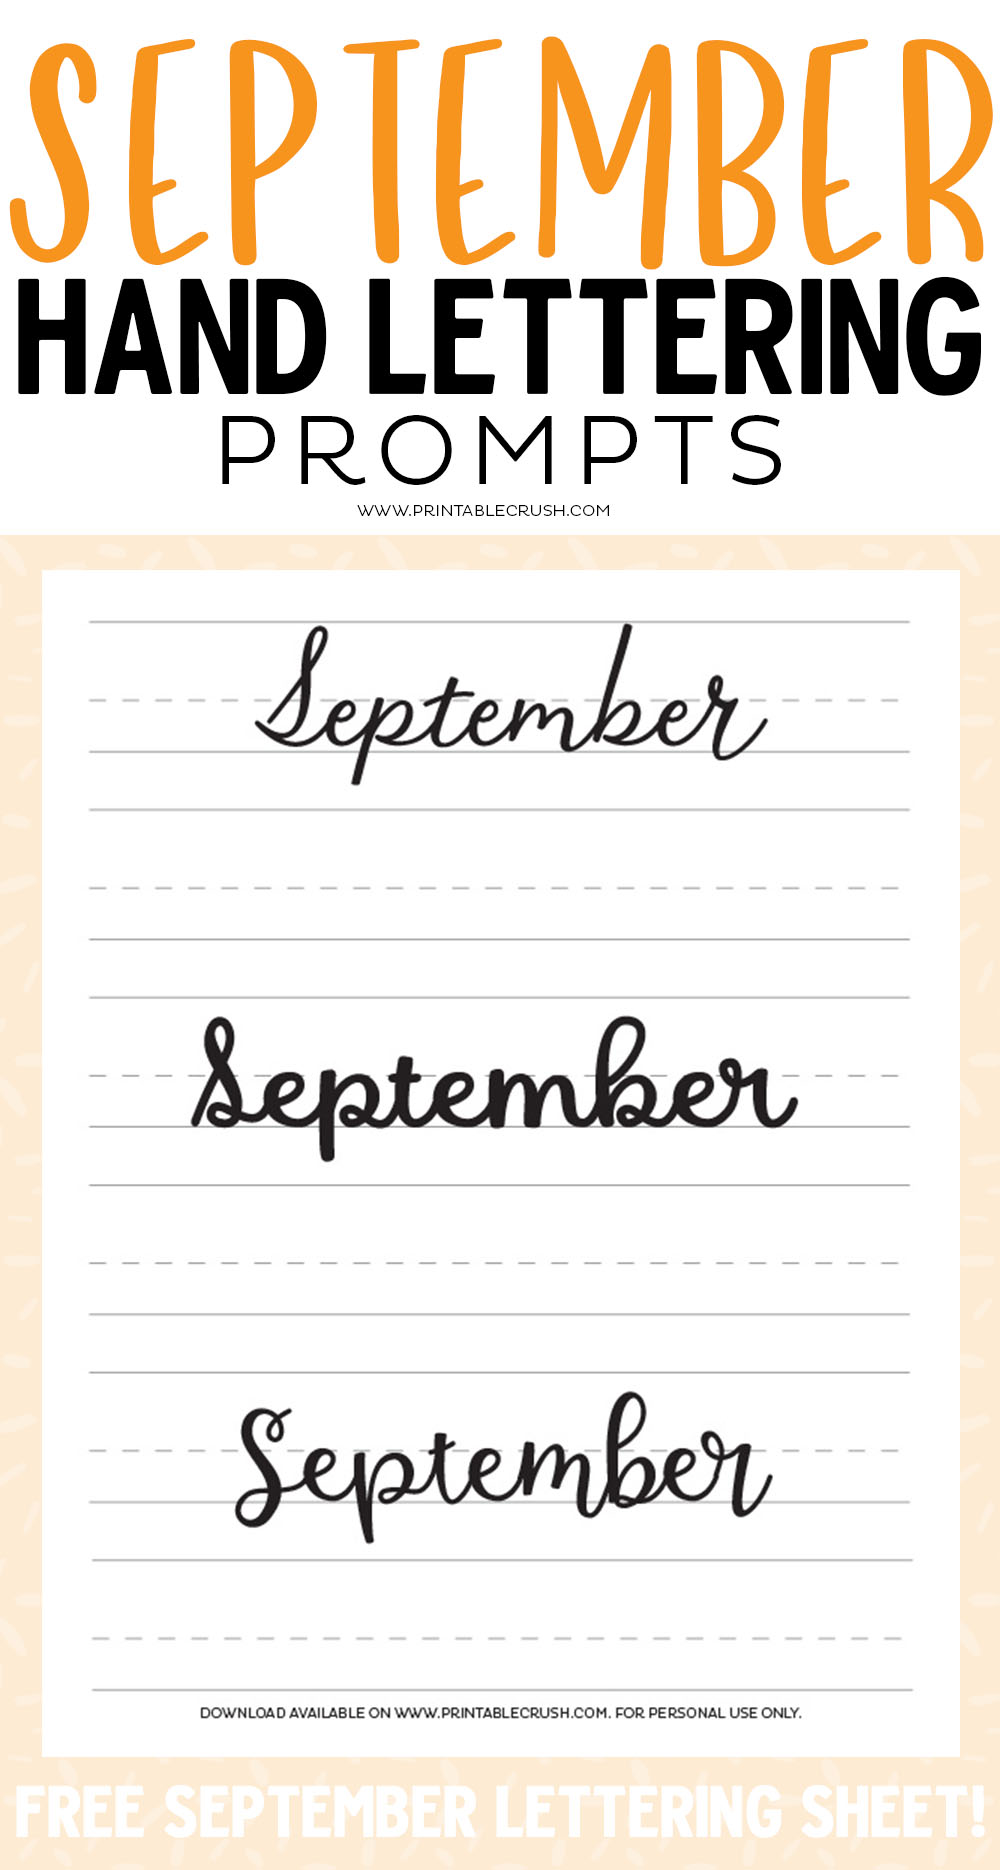 30 days of September lettering prompts to help you practice your lettering skills daily!